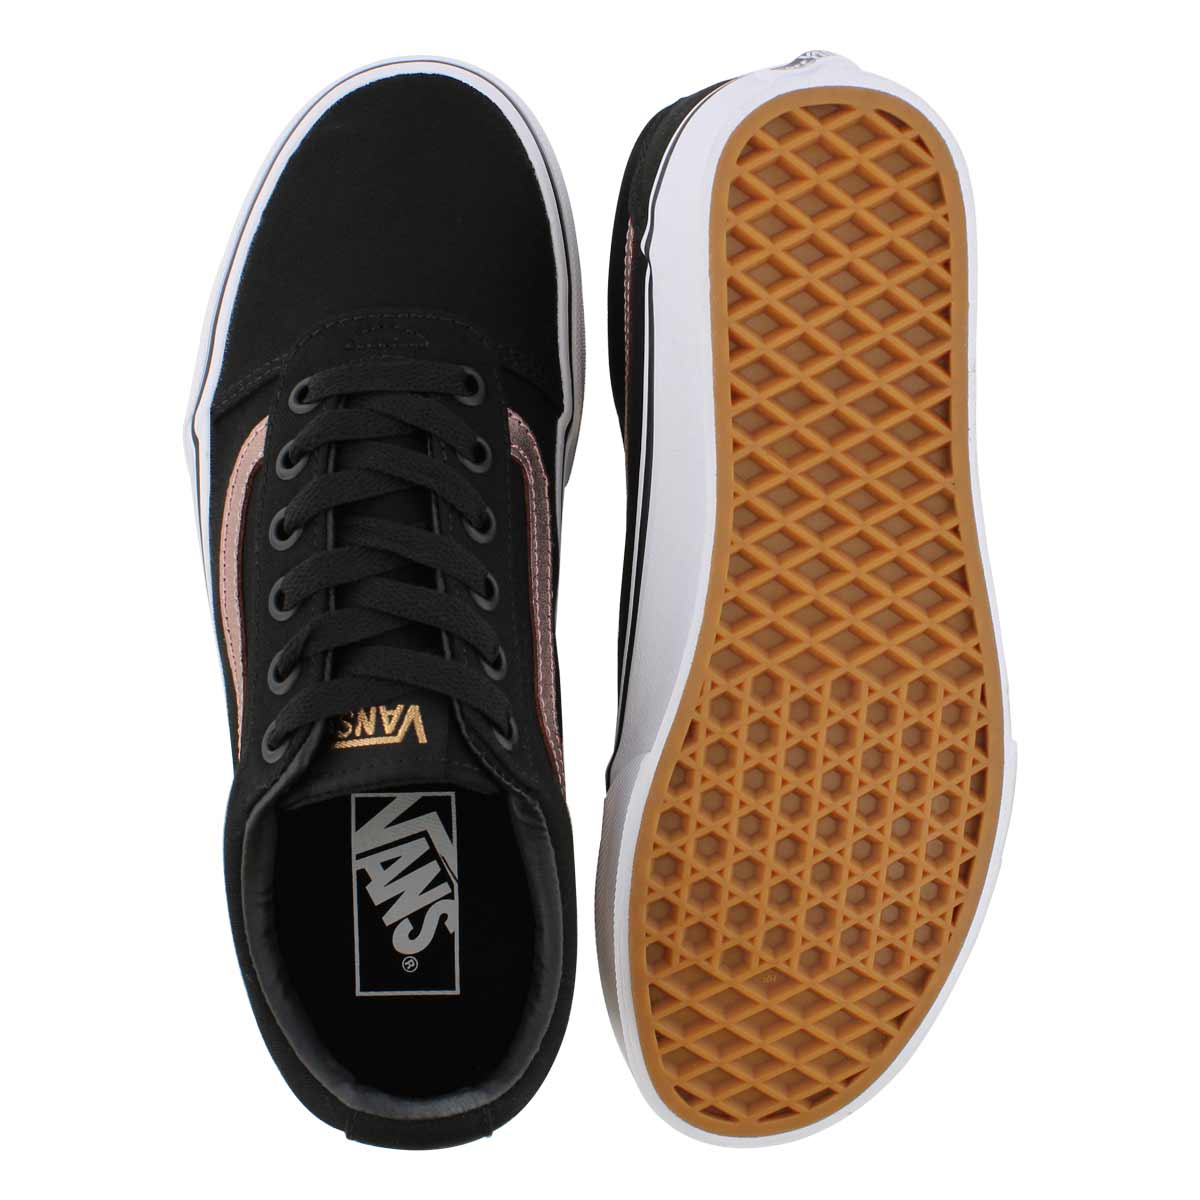 Lds Ward blk/rse gld lace up snkr